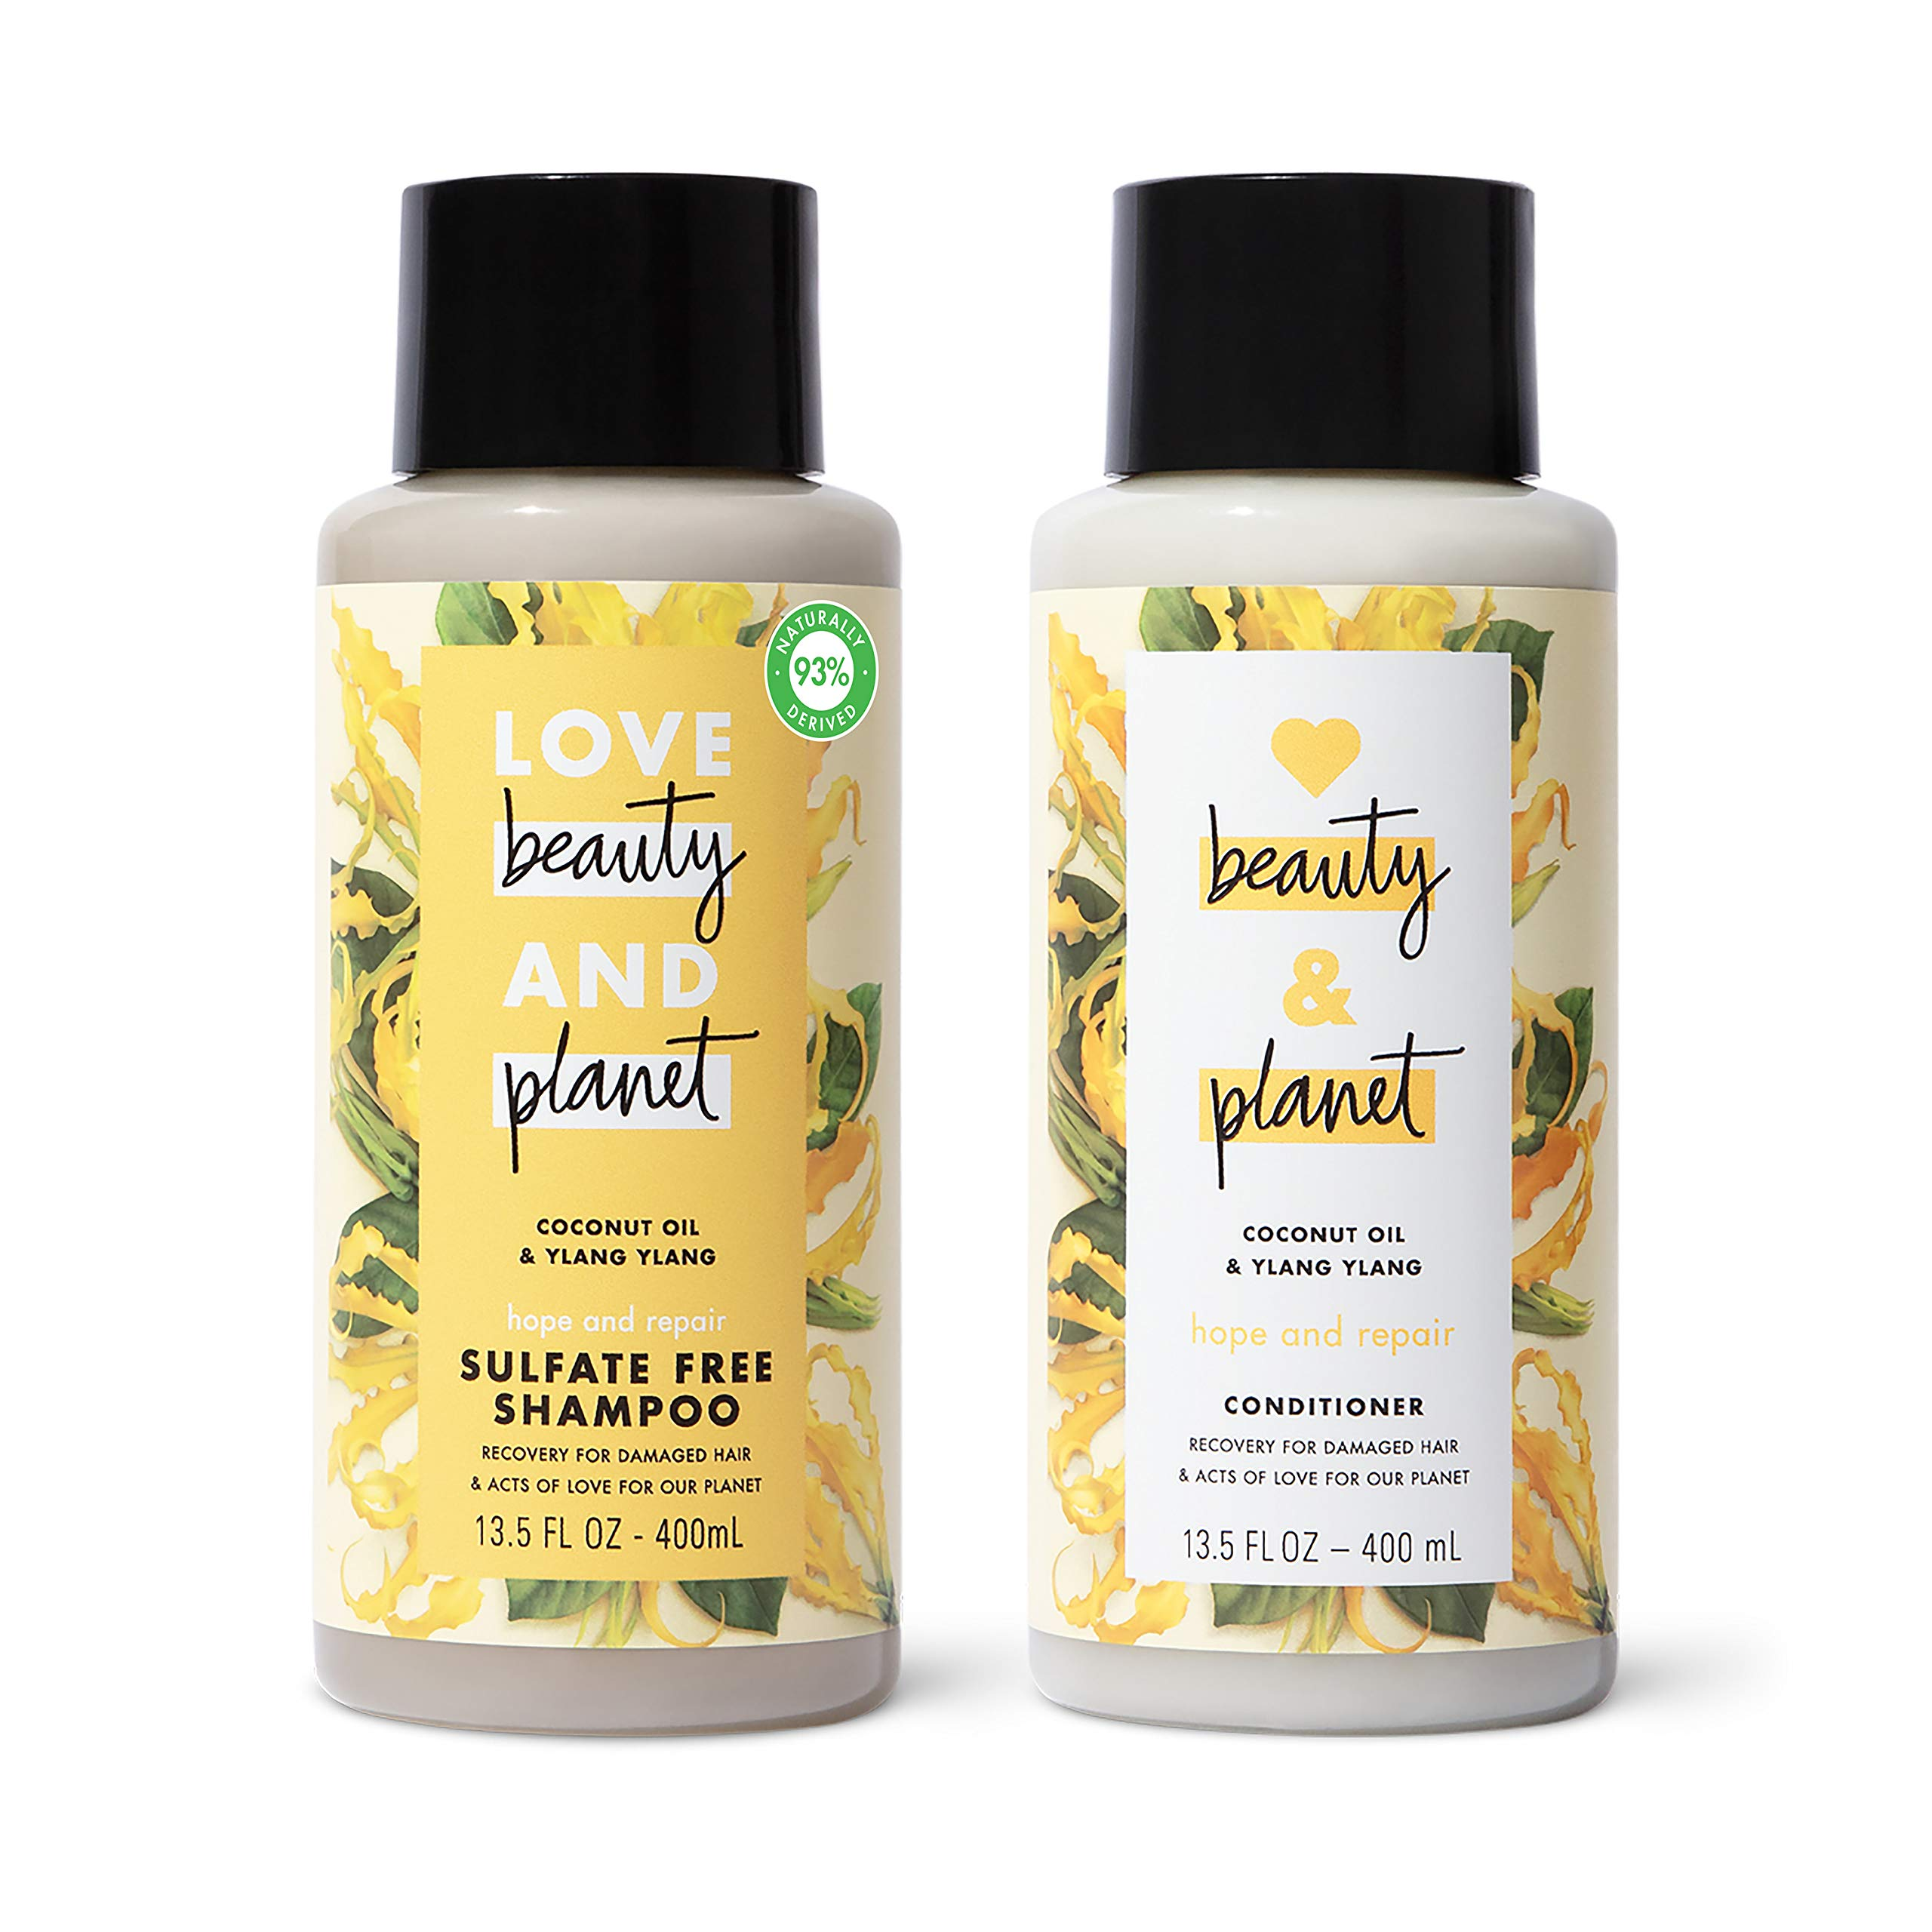 Love Beauty And Planet Hope and Repair Shampoo and Conditioner Dry Hair and Damaged Hair Care Coconut Oil and Ylang Ylang Paraben Free, Silicone Free, and Vegan 13.5 oz, 2 count